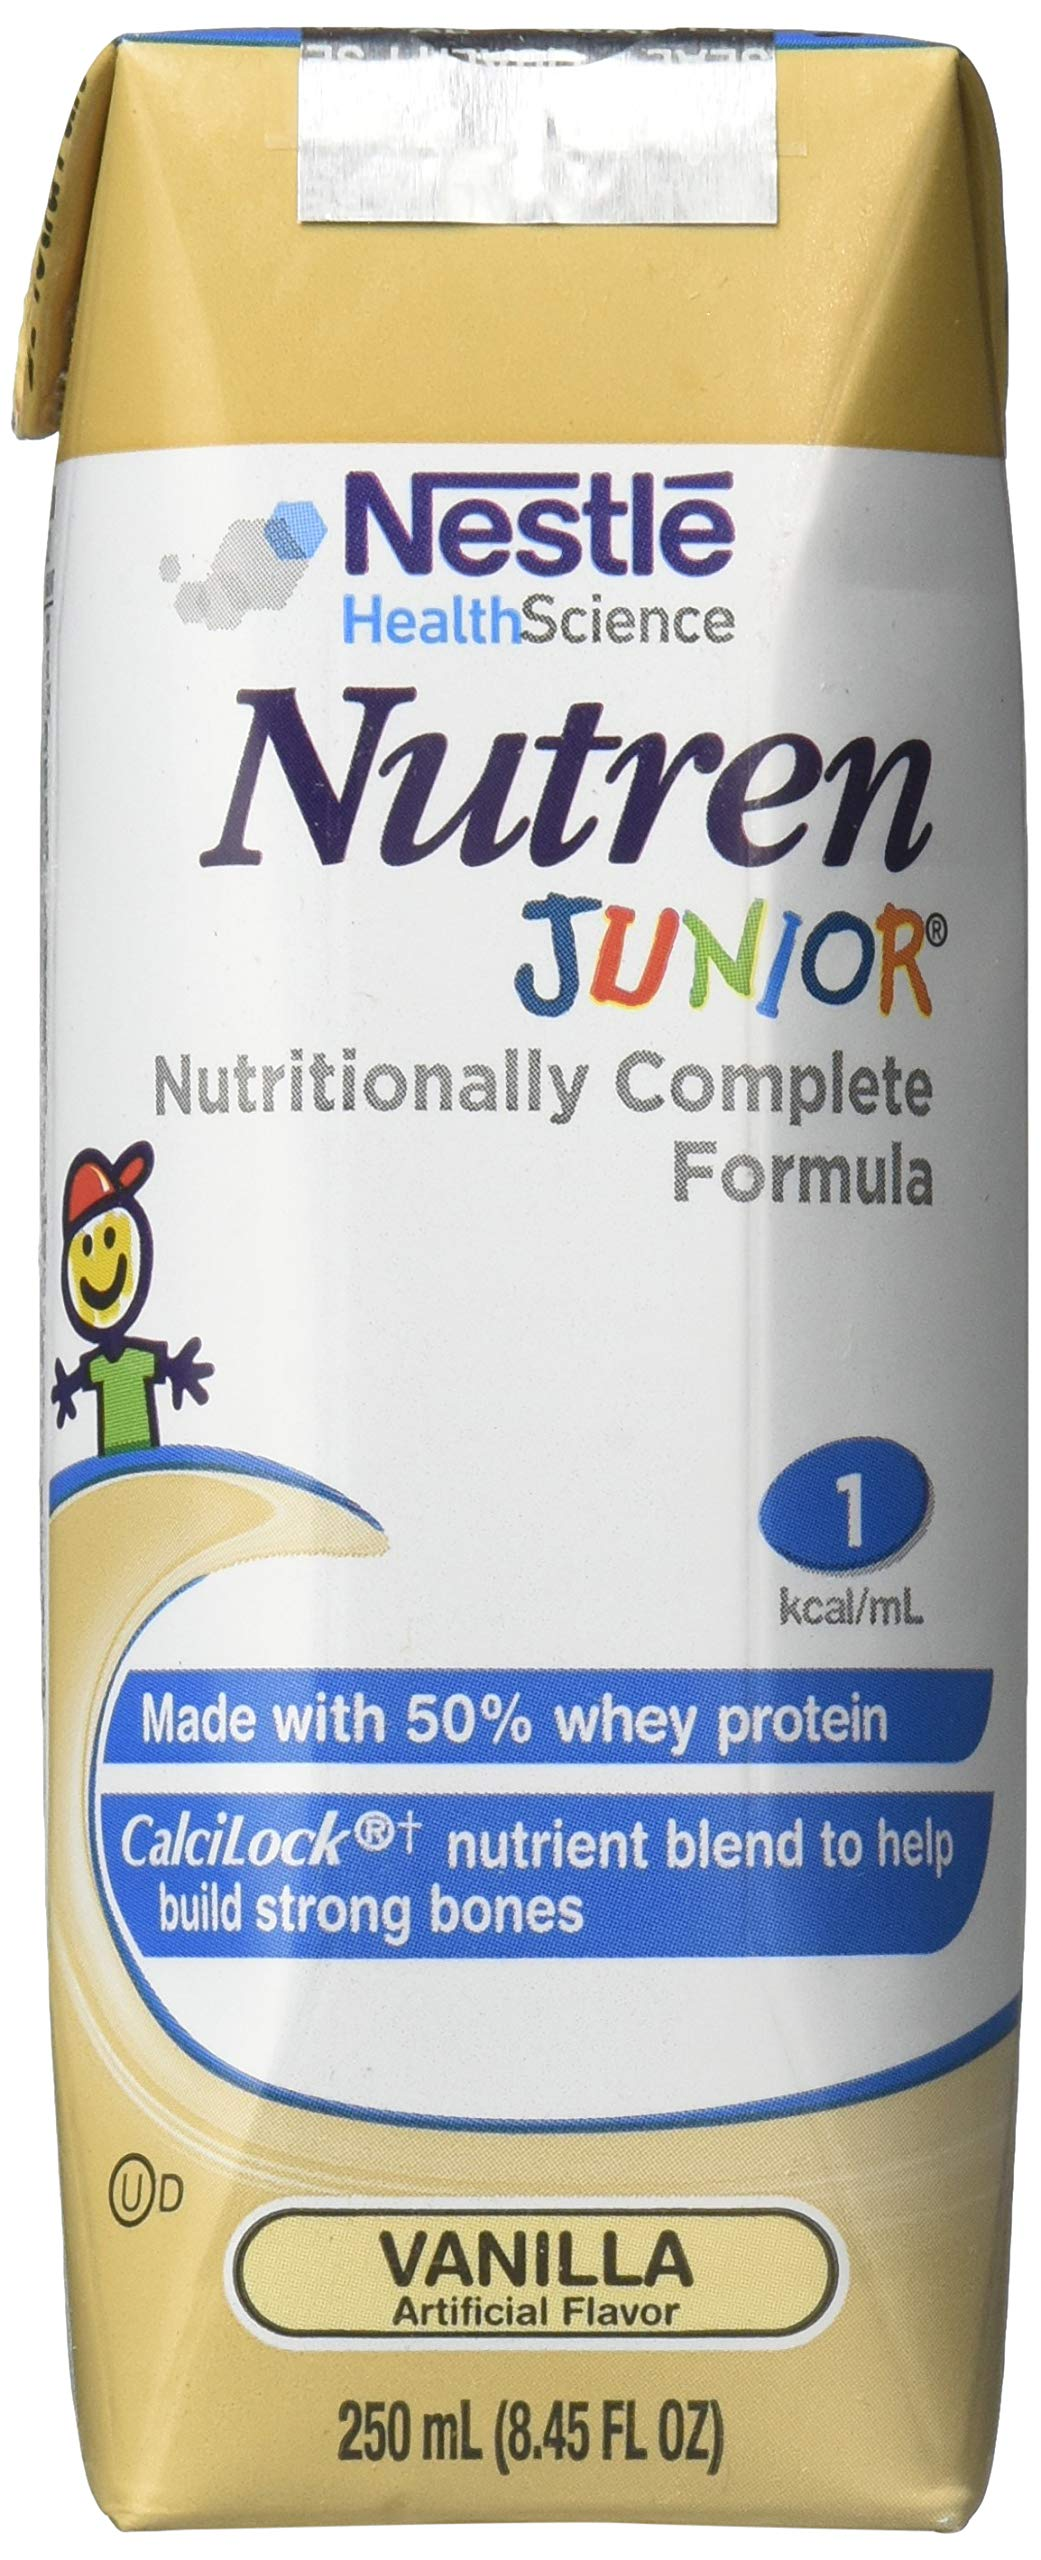 Amazon.com: NUTREN JUNIOR Vanilla Brikpaks 24 x 250 mL Case: Health & Personal Care